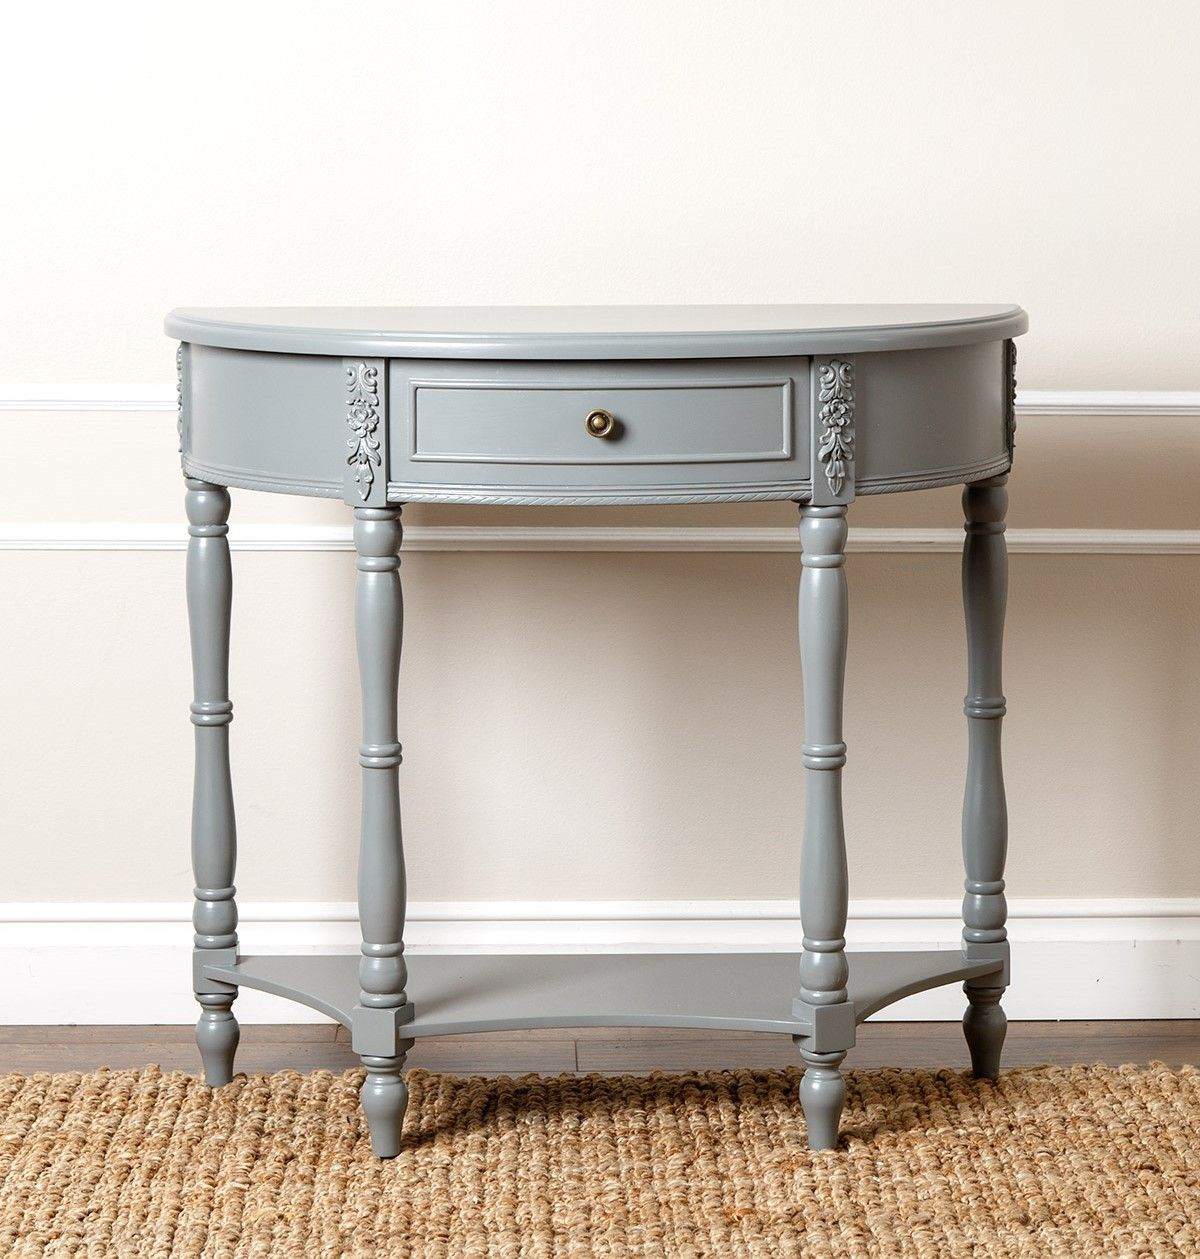 San pedro antiqued steel blue console sofa table